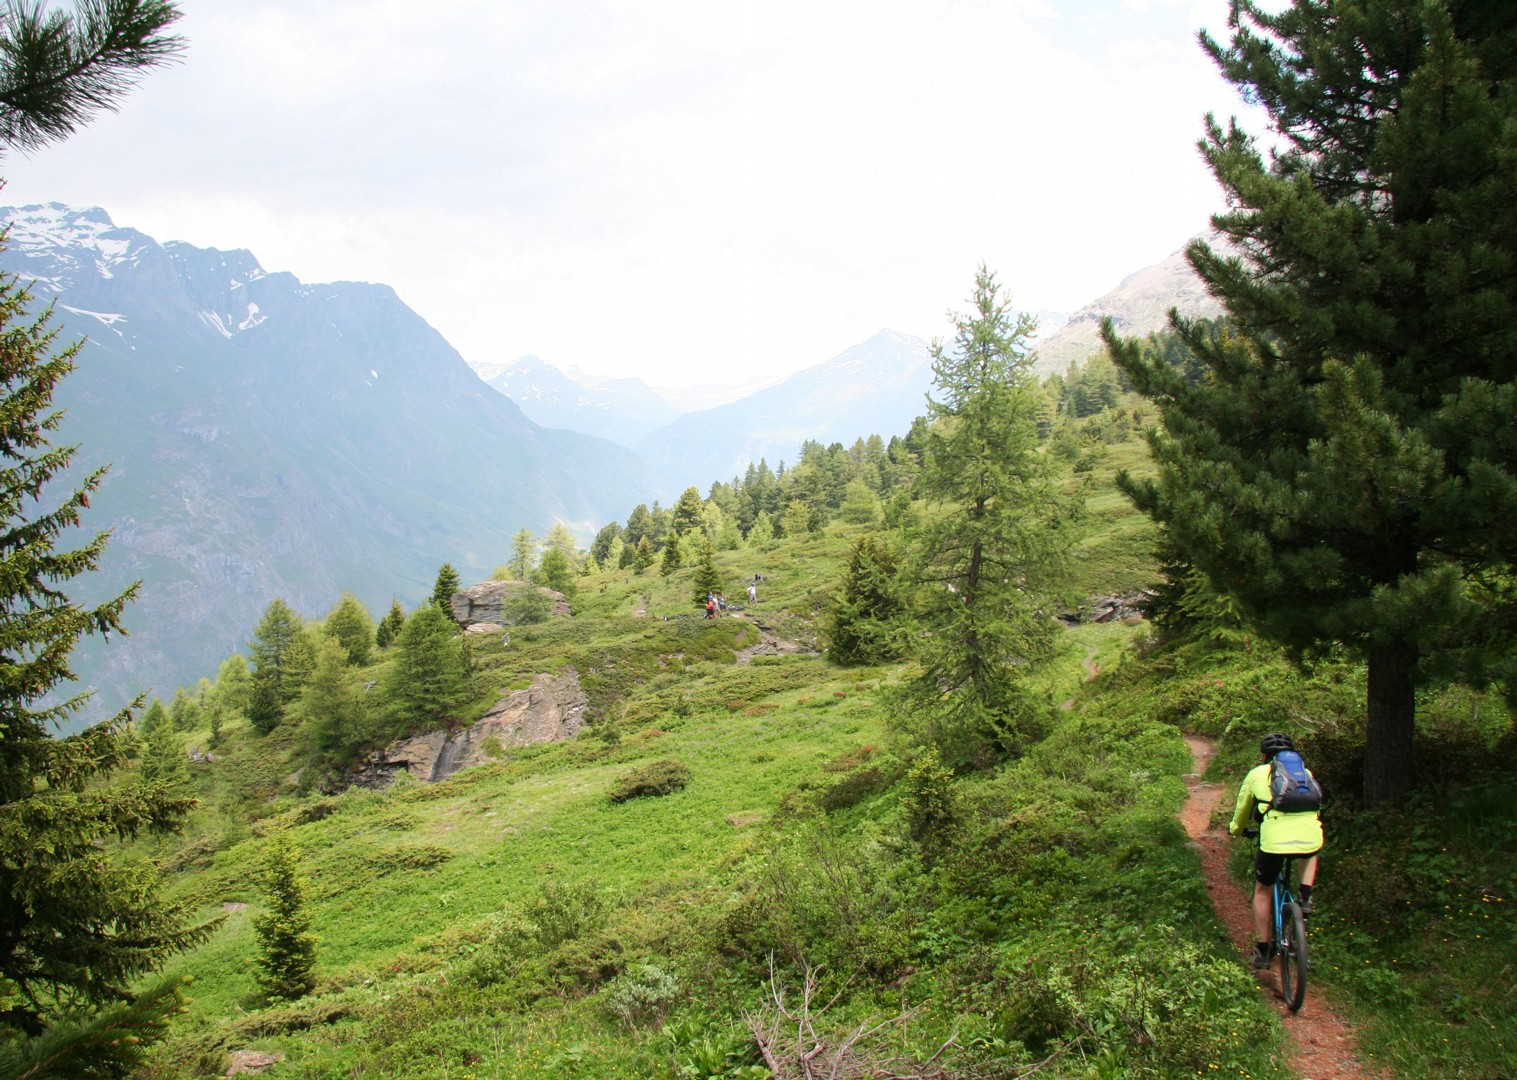 susa-mountain-bike-holiday-in-italy-and-france-alpine-adventure.JPG - Italy and France - Alpine Adventure - Mountain Biking